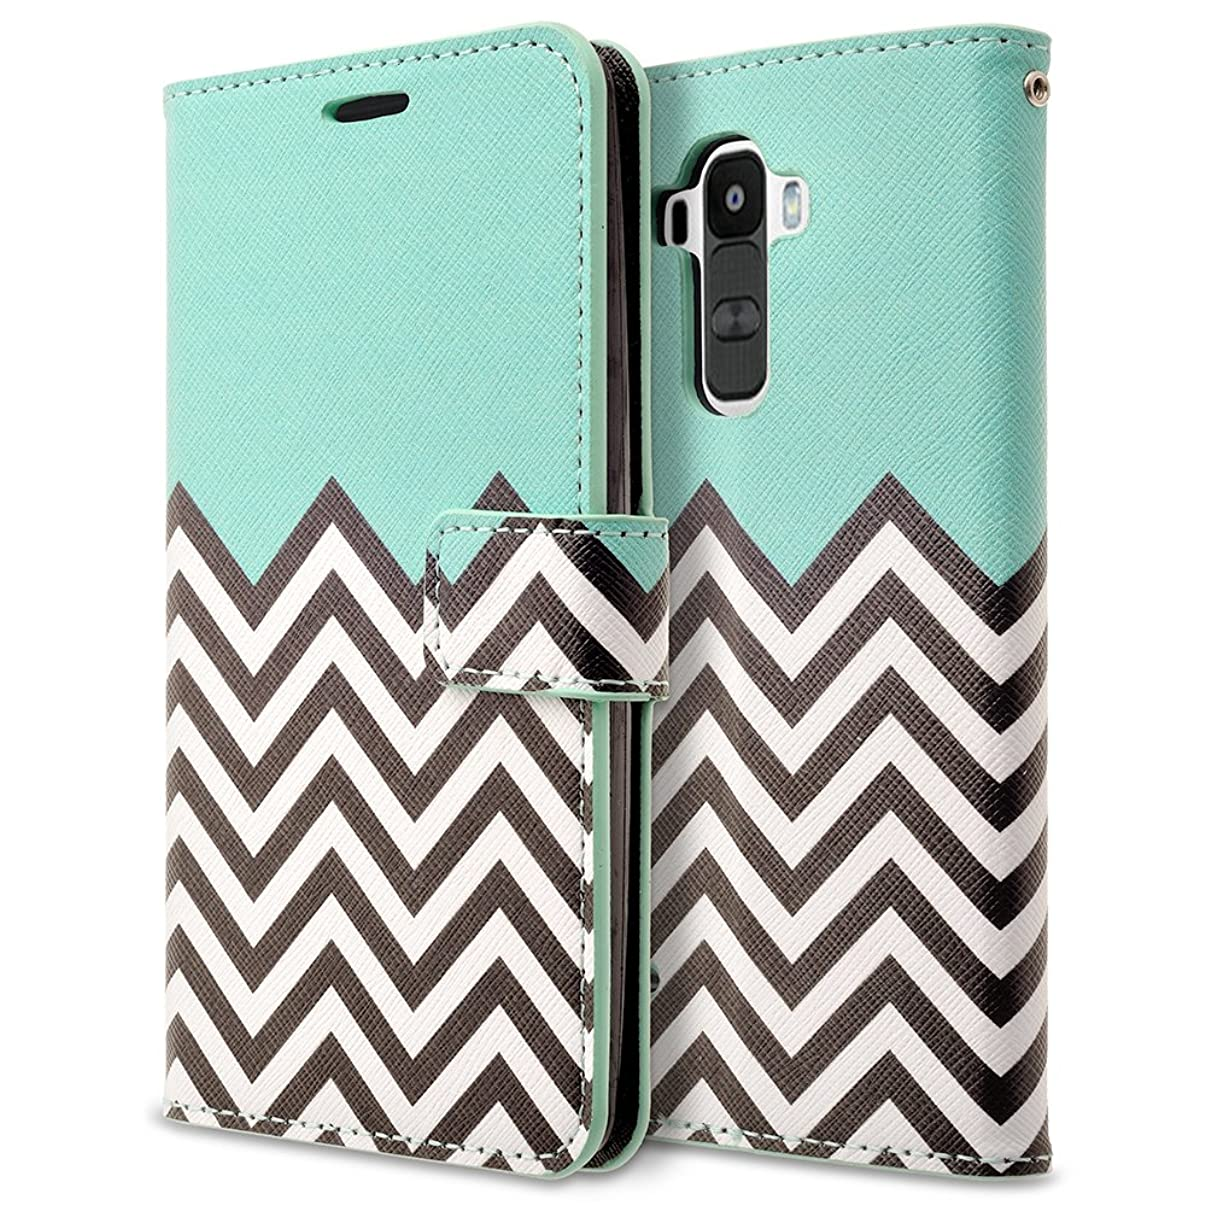 LG G Stylo Case, RANZ Stylish Design Deluxe PU Leather Folio Flip Book Wallet Pouch Case Cover (Teal Waves) for LG G Stylo(LS770)/ LG G Stylus H631